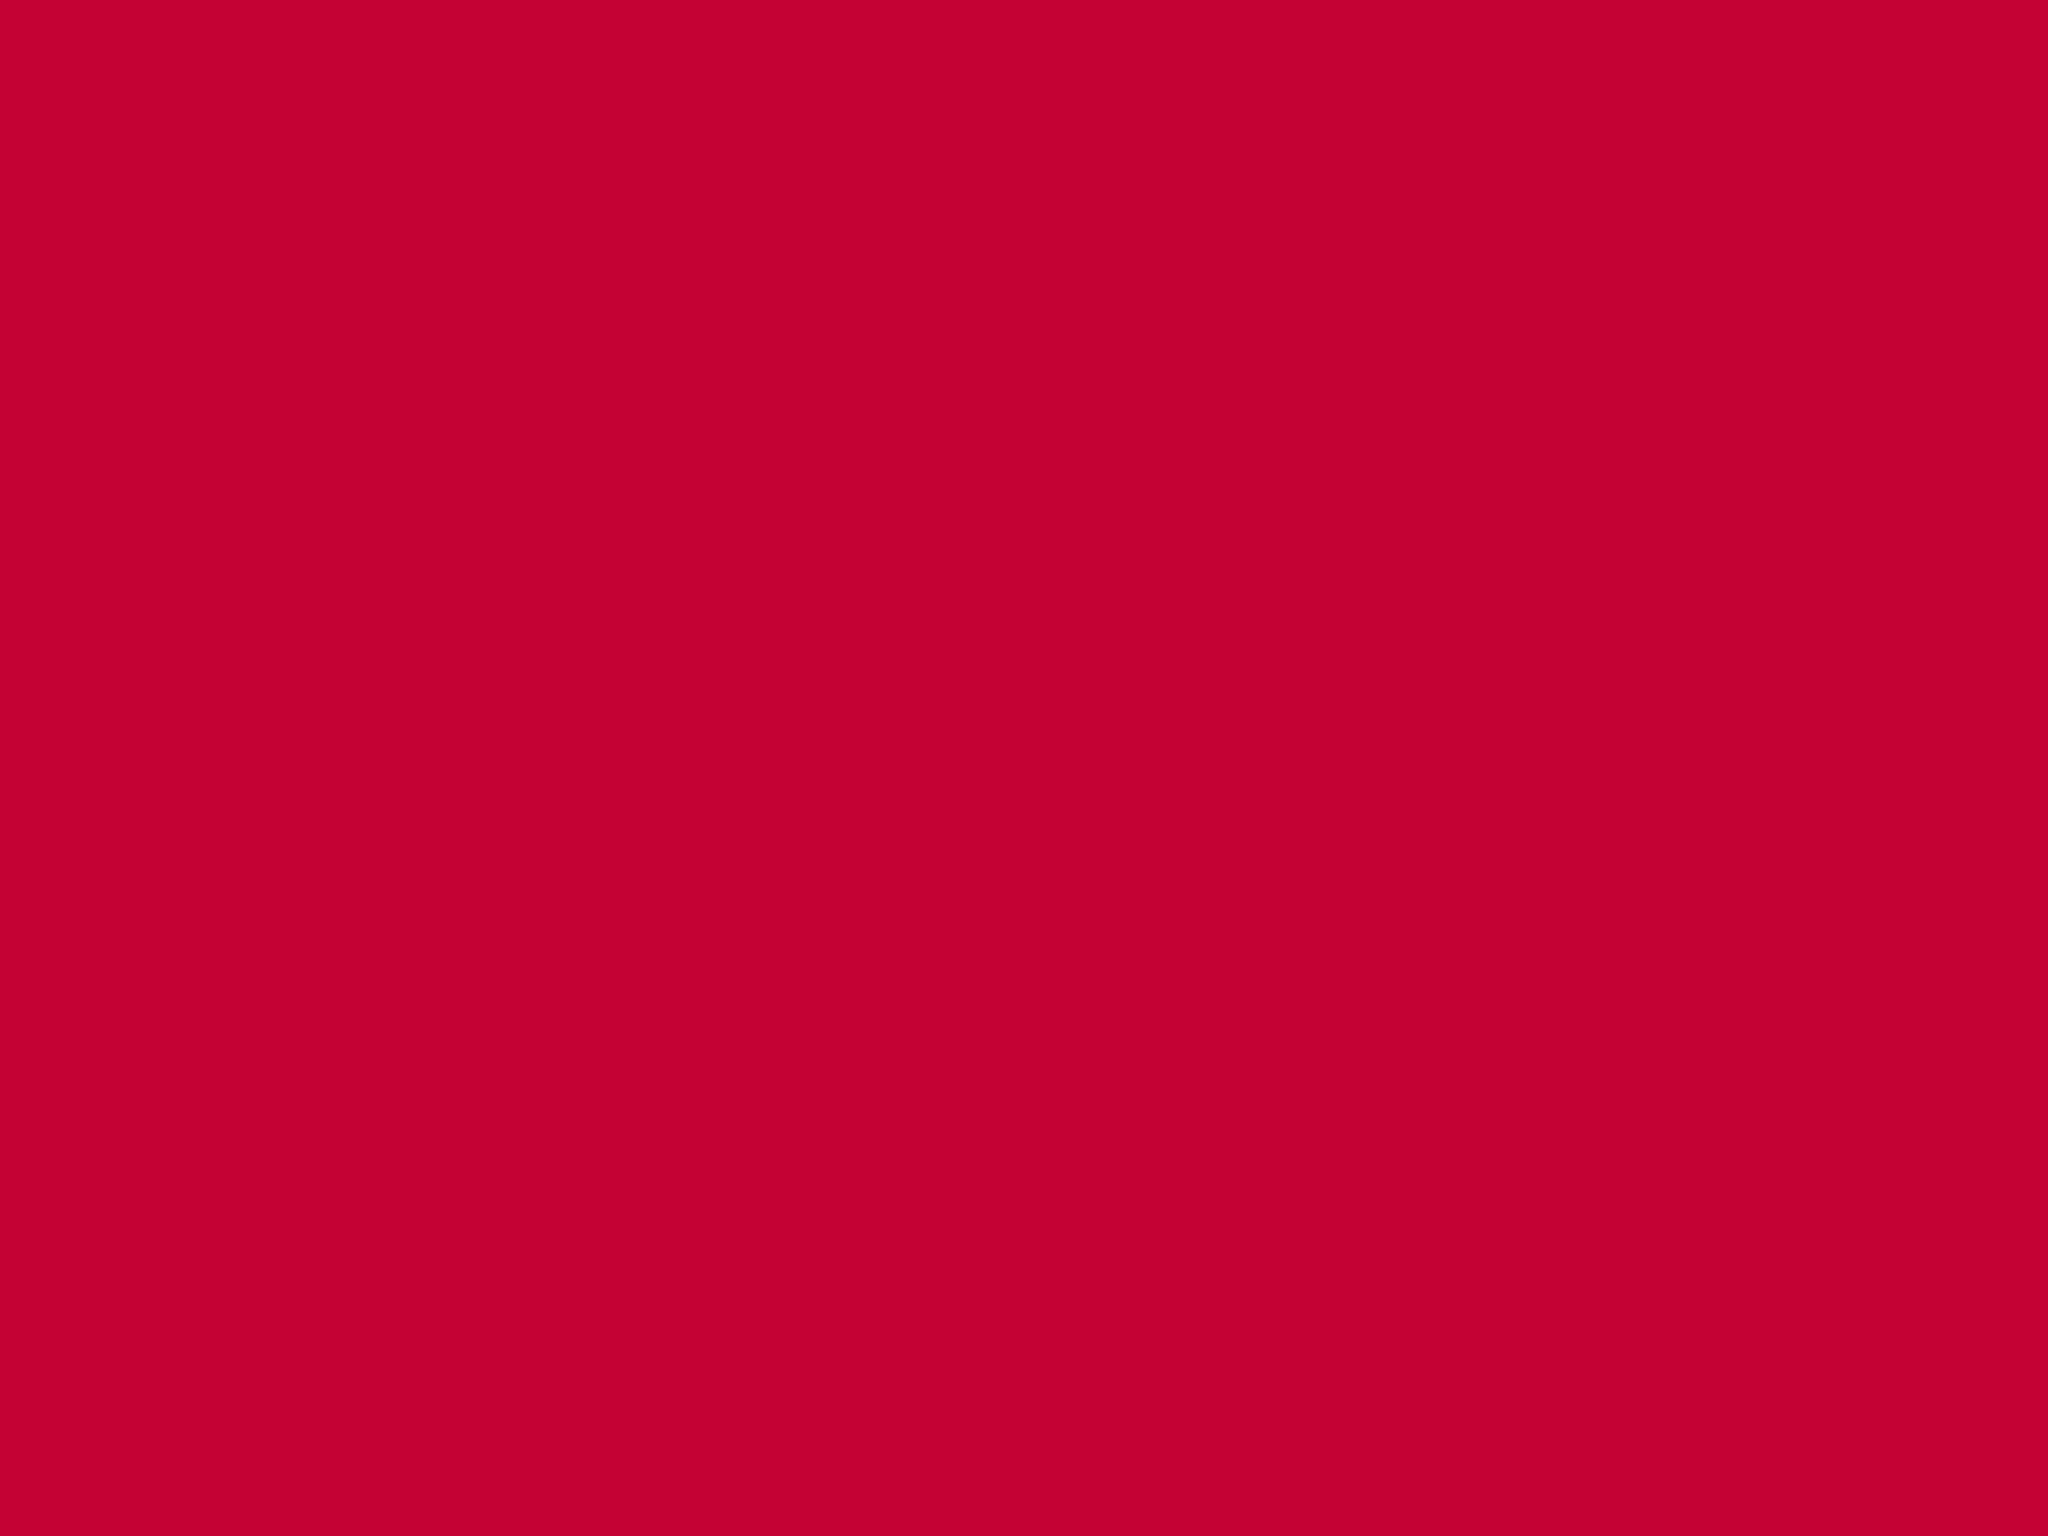 2048x1536 Red NCS Solid Color Background